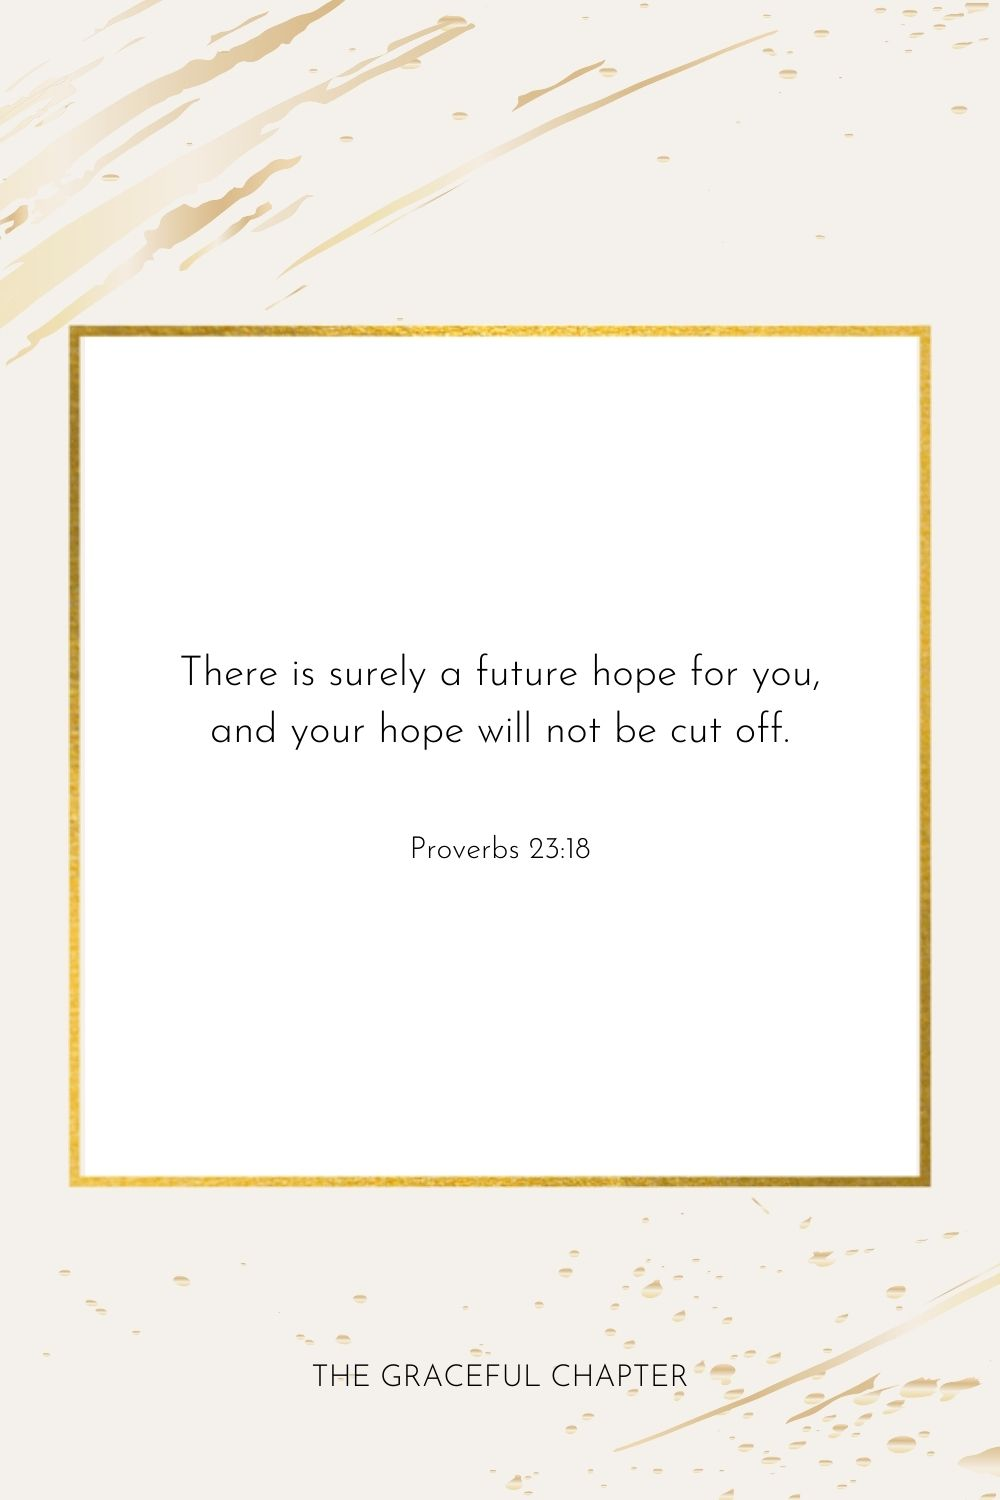 There is surely a future hope for you, and your hope will not be cut off  Proverbs 23:18